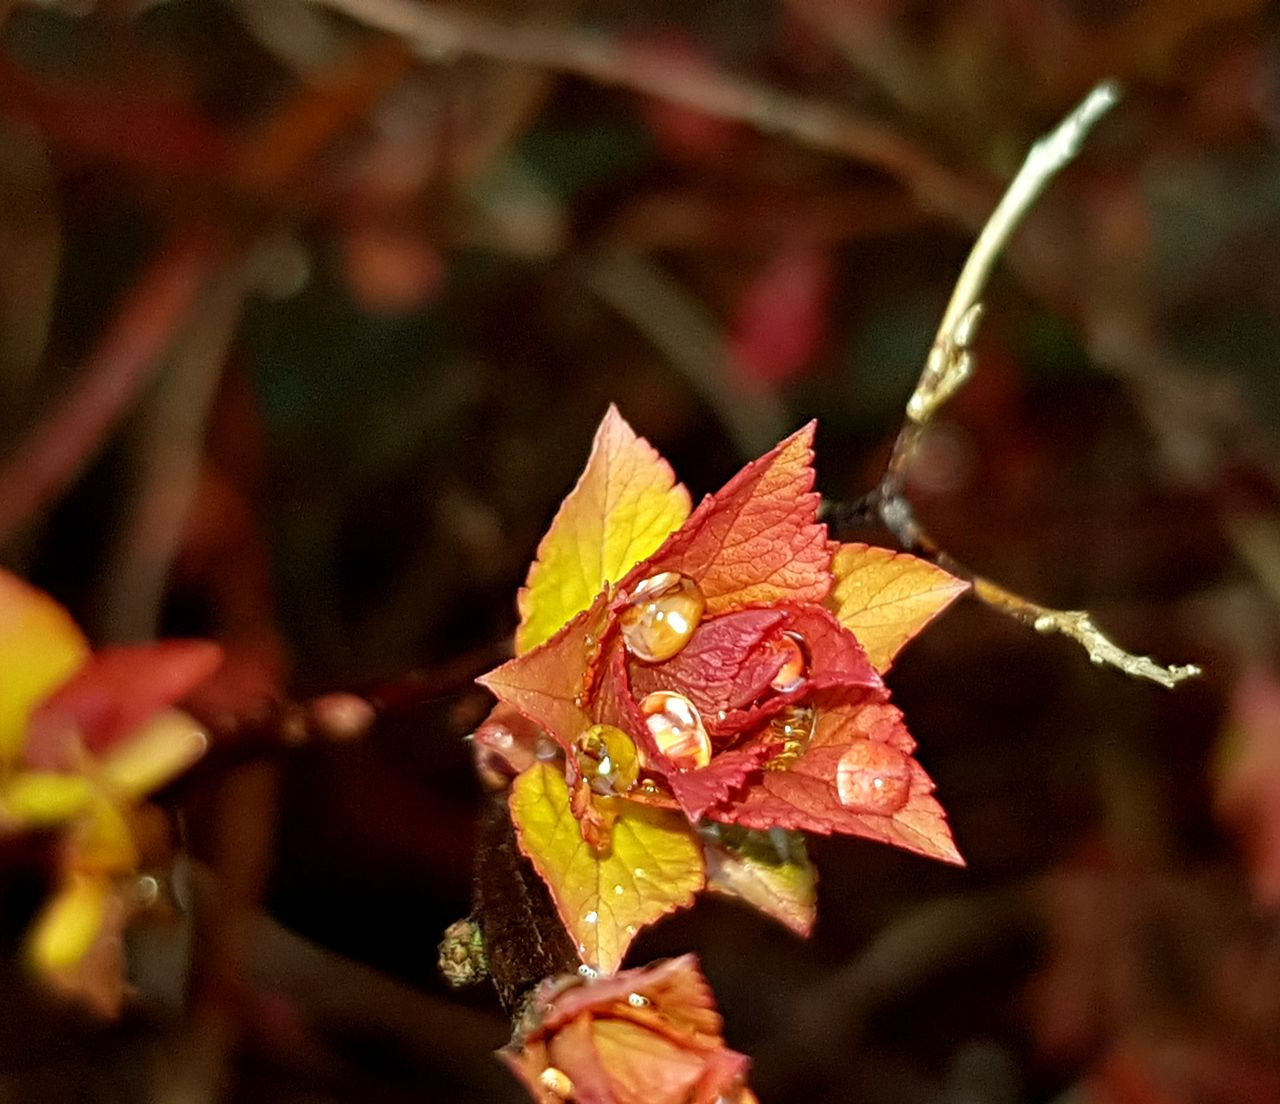 plant part, close-up, leaf, plant, beauty in nature, focus on foreground, nature, no people, autumn, growth, day, vulnerability, fragility, change, outdoors, selective focus, dry, leaves, drop, flower head, maroon, maple leaf, natural condition, flower